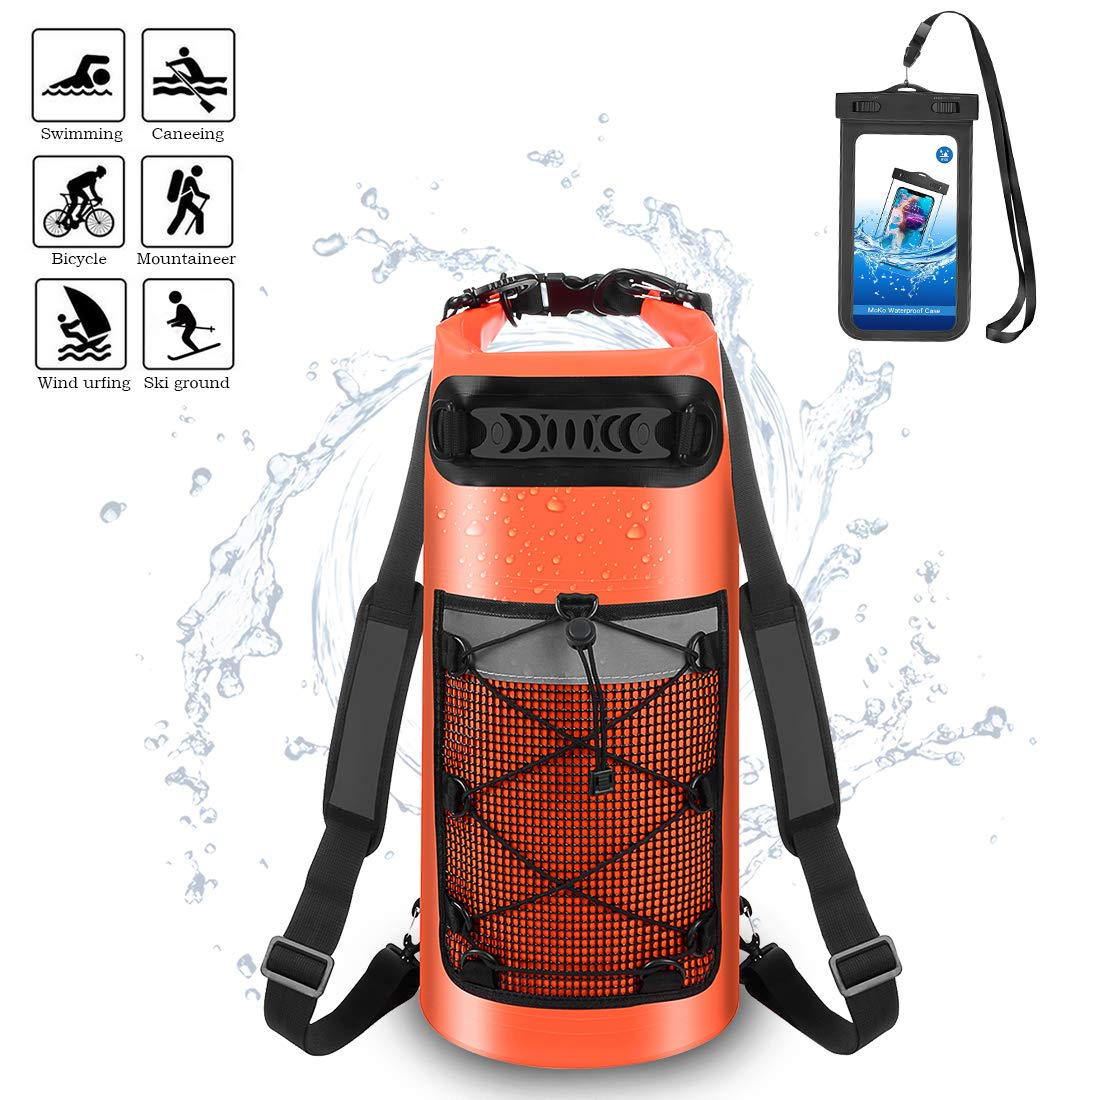 Kayaking Surfing Boating 10L 20L 30L. Rafting ALEENUN Premium Waterproof Dry Bag Camping Gifts for Men and Women Free Waterproof Phone Case Dry Backpack for Water Sports Fishing